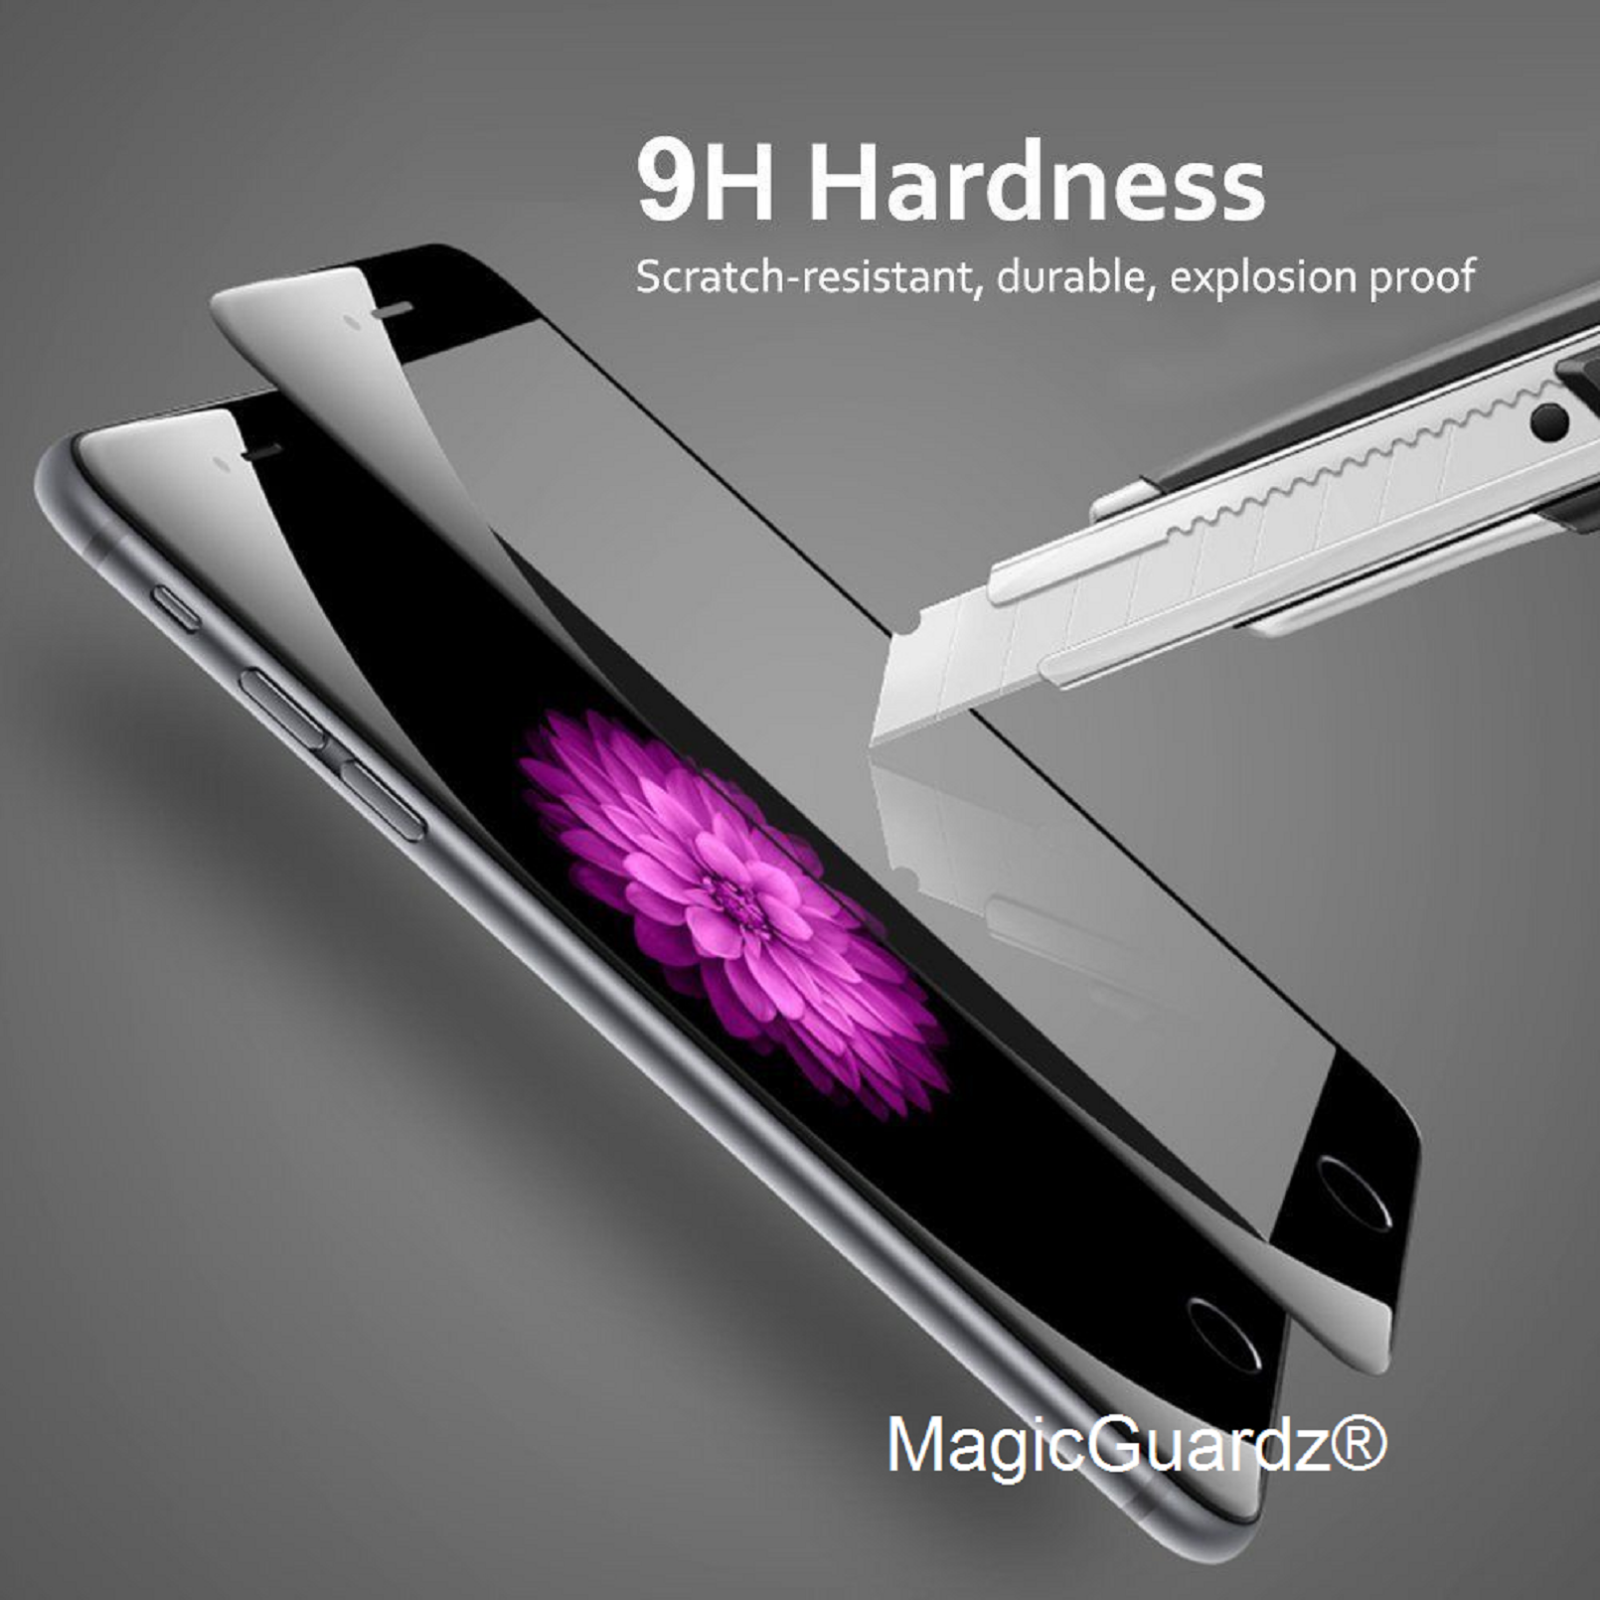 Full Coverage Tempered Glass Screen Protector For iPhone 6 7 8 Plus X Xs Max XR -   10 - Full Coverage Tempered Glass Screen Protector For iPhone 6 7 8 Plus X Xs Max XR